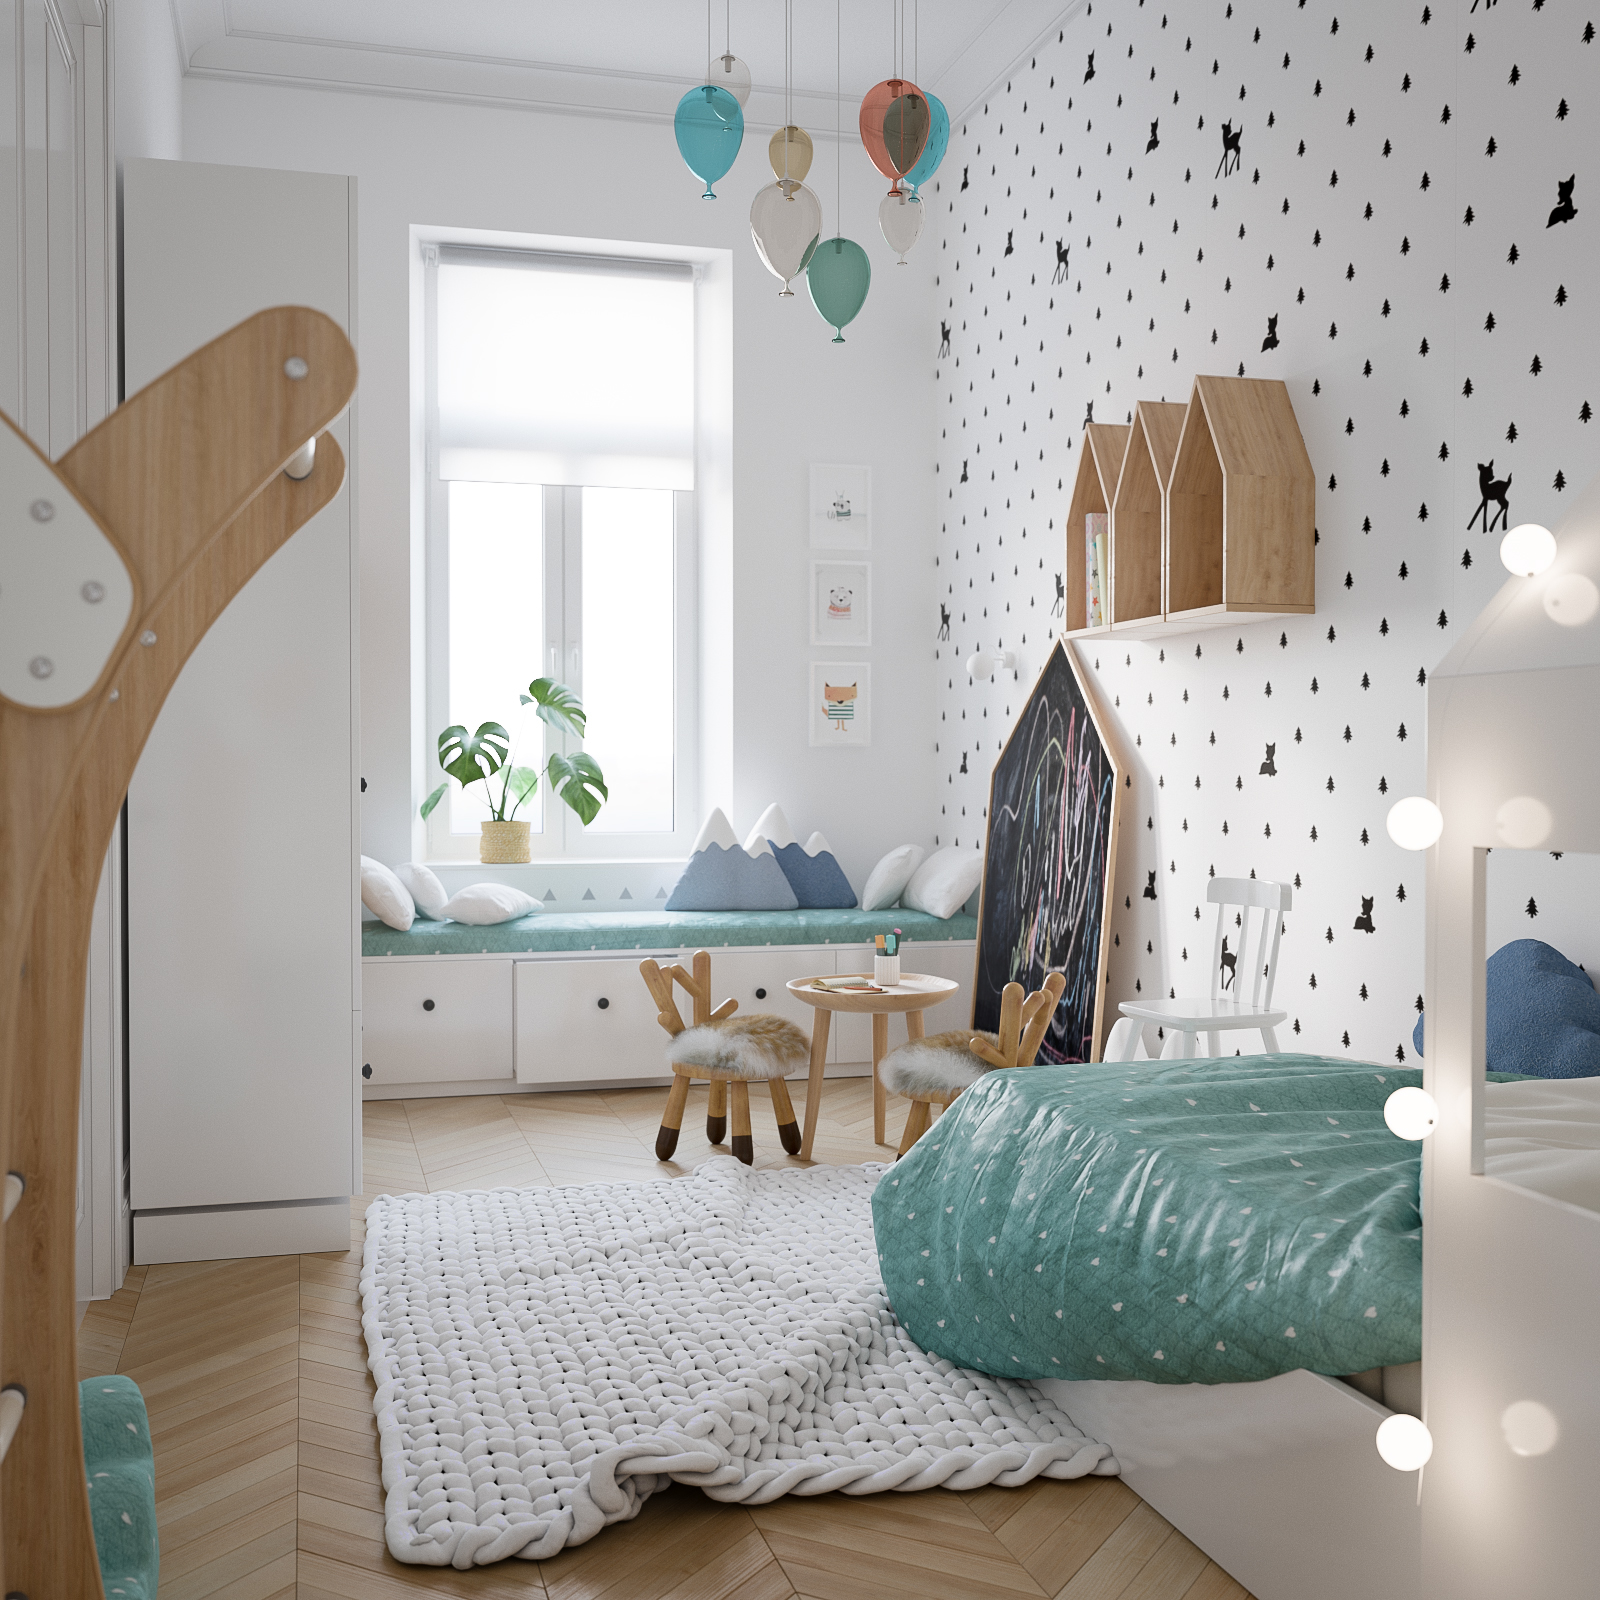 Kids Room Decoration: Modern Scandinavian Style Home Design For Young Families